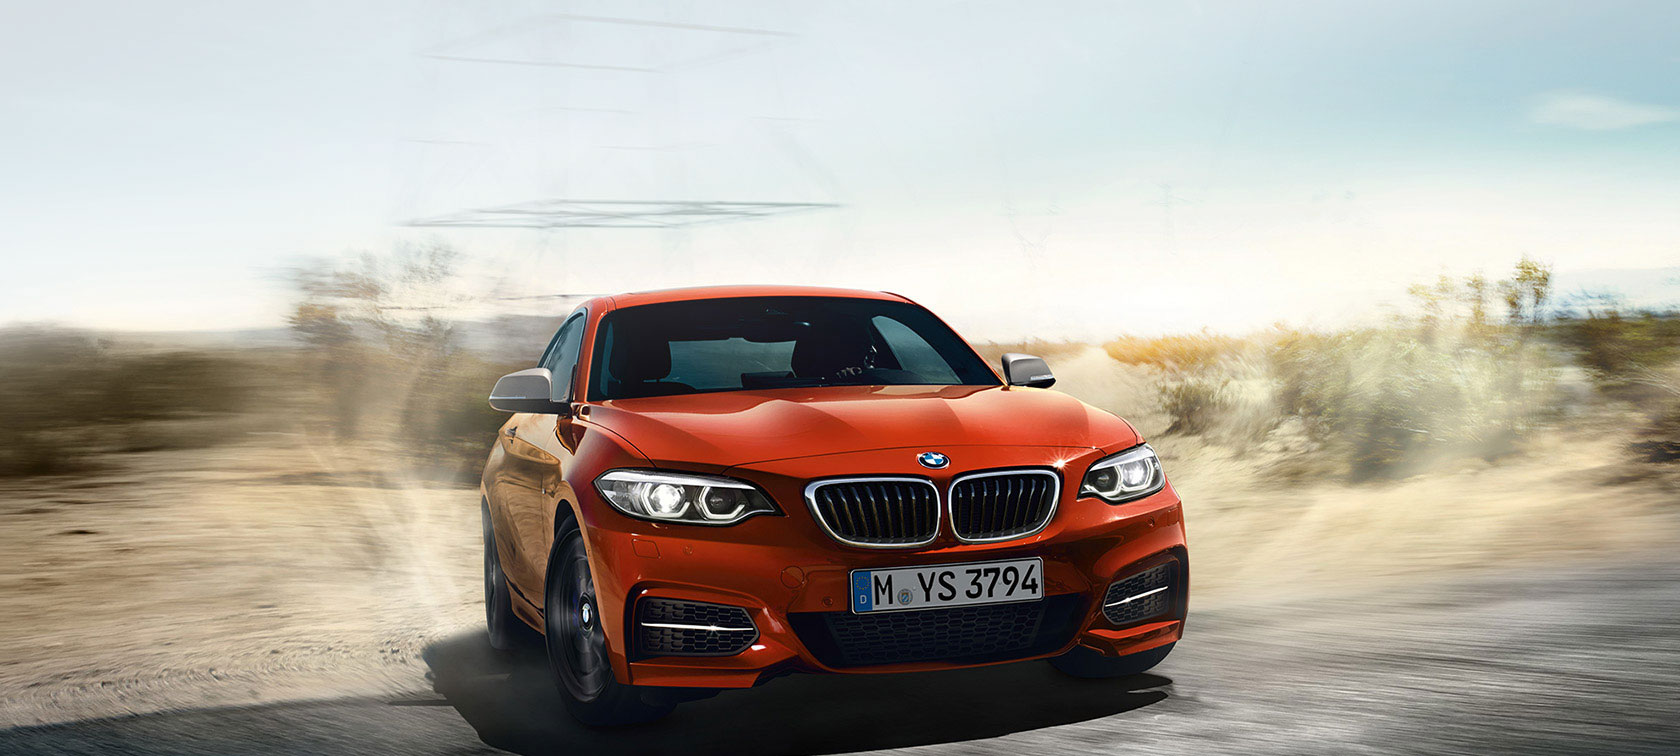 BMW 2 Series Coupé driving